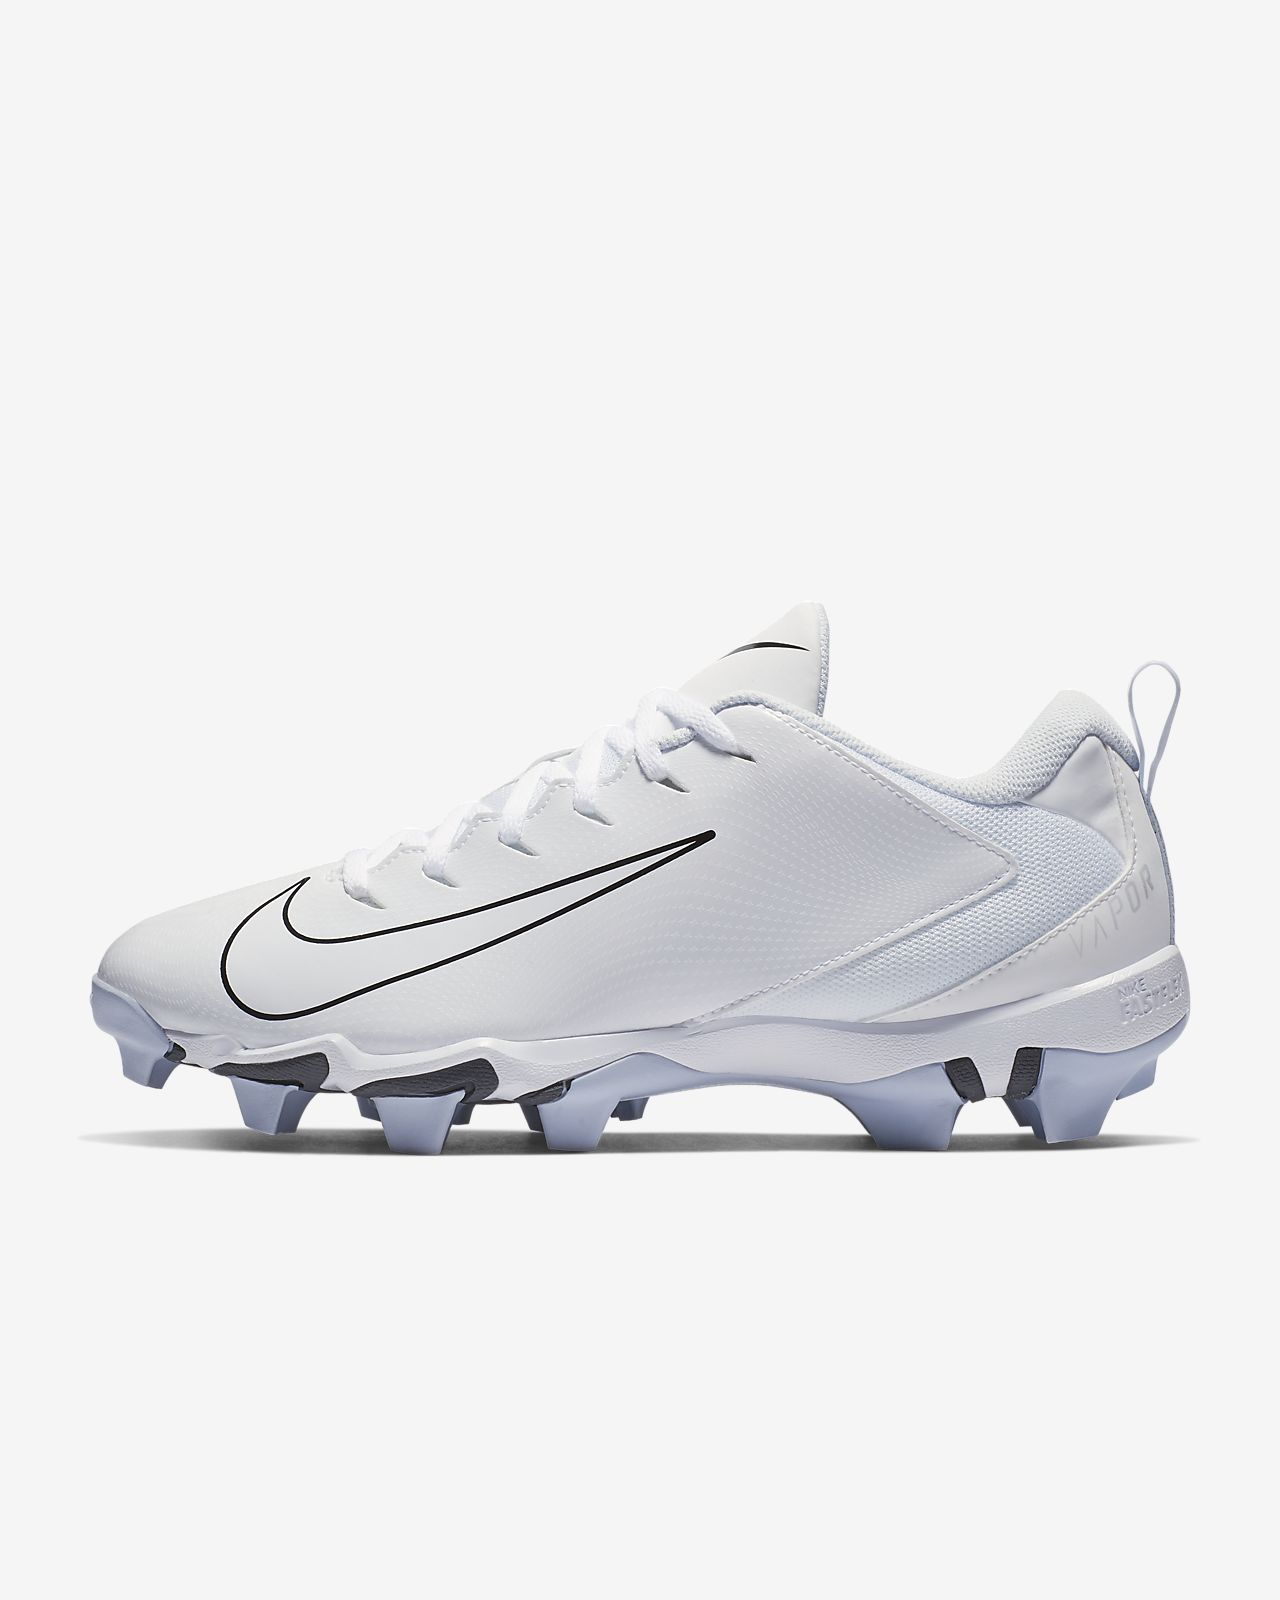 brand new 32478 f25d2 ... Nike Vapor Untouchable Shark 3 Men s Football Cleat